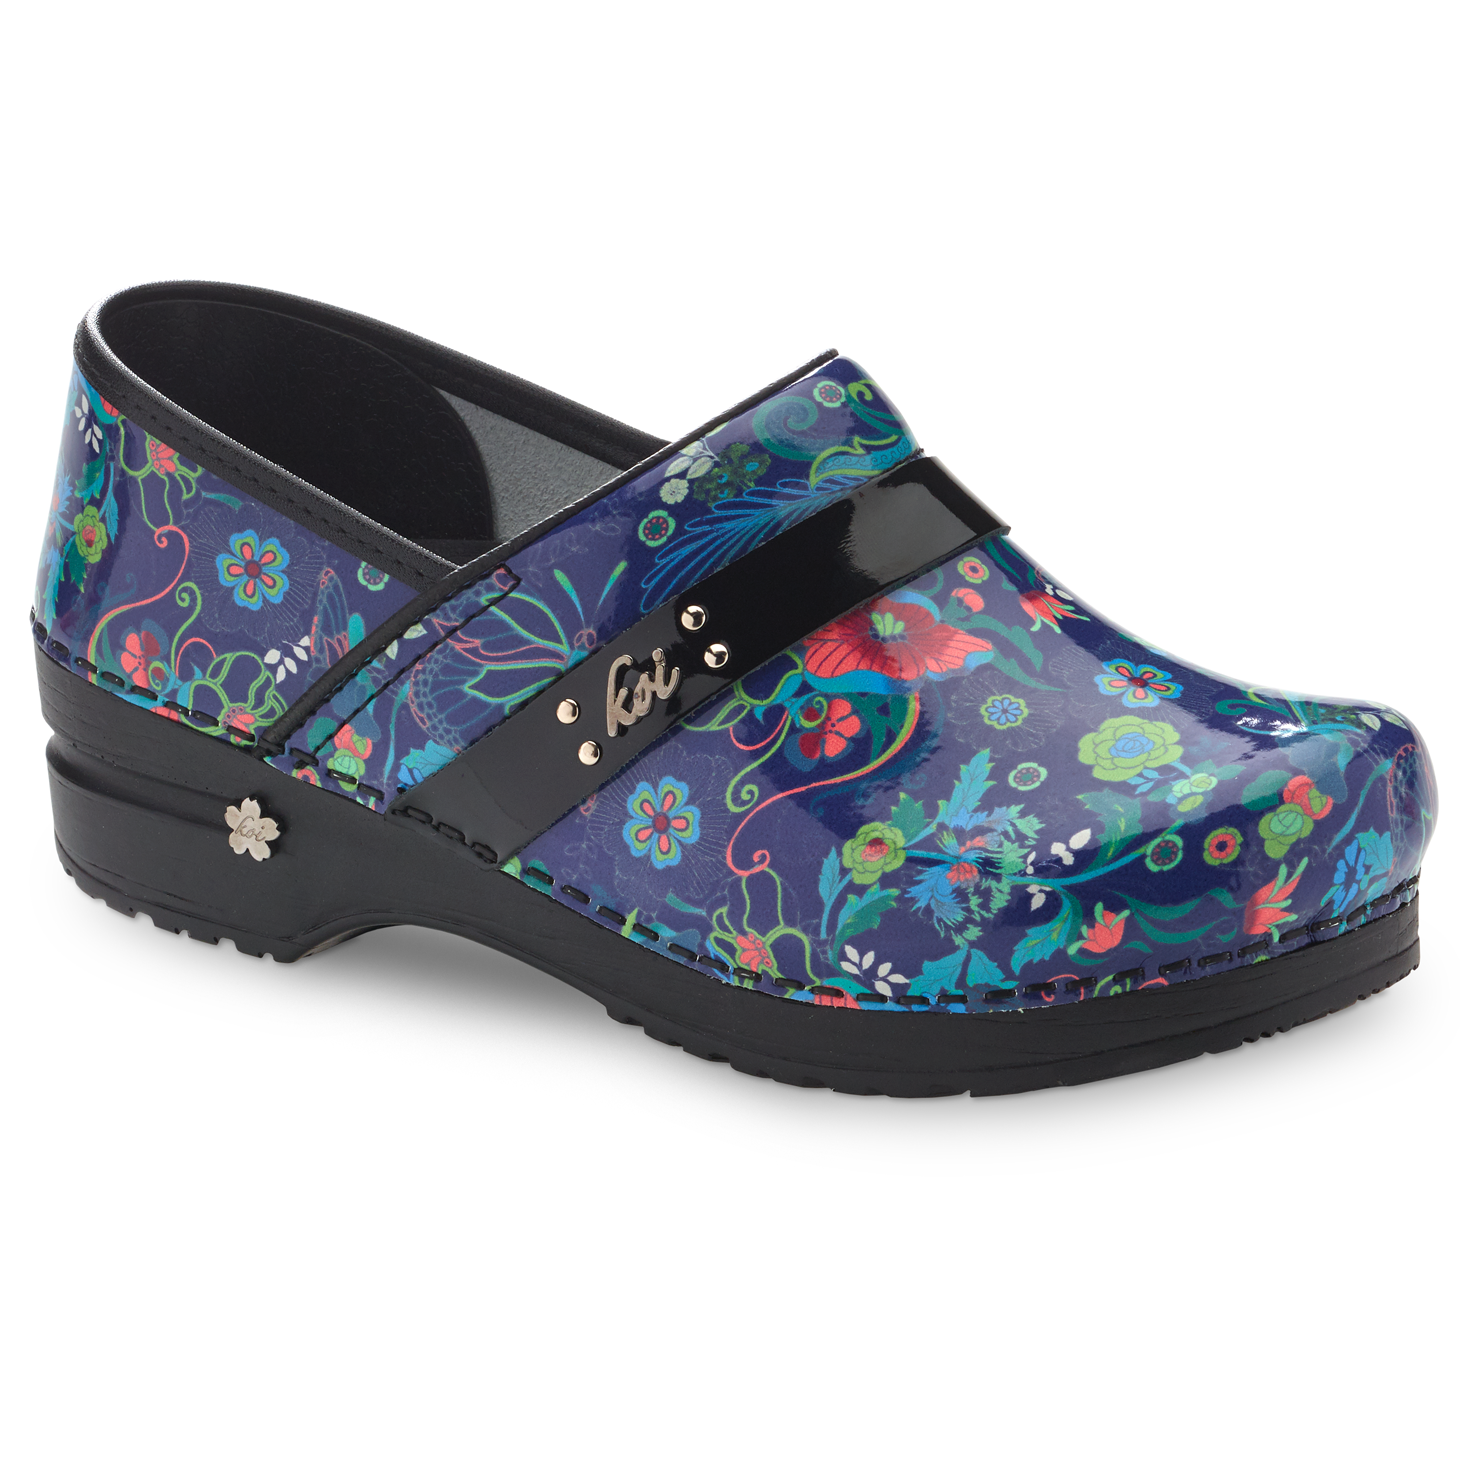 Sanita Koi Secret Garden Women's Closed Back Clog